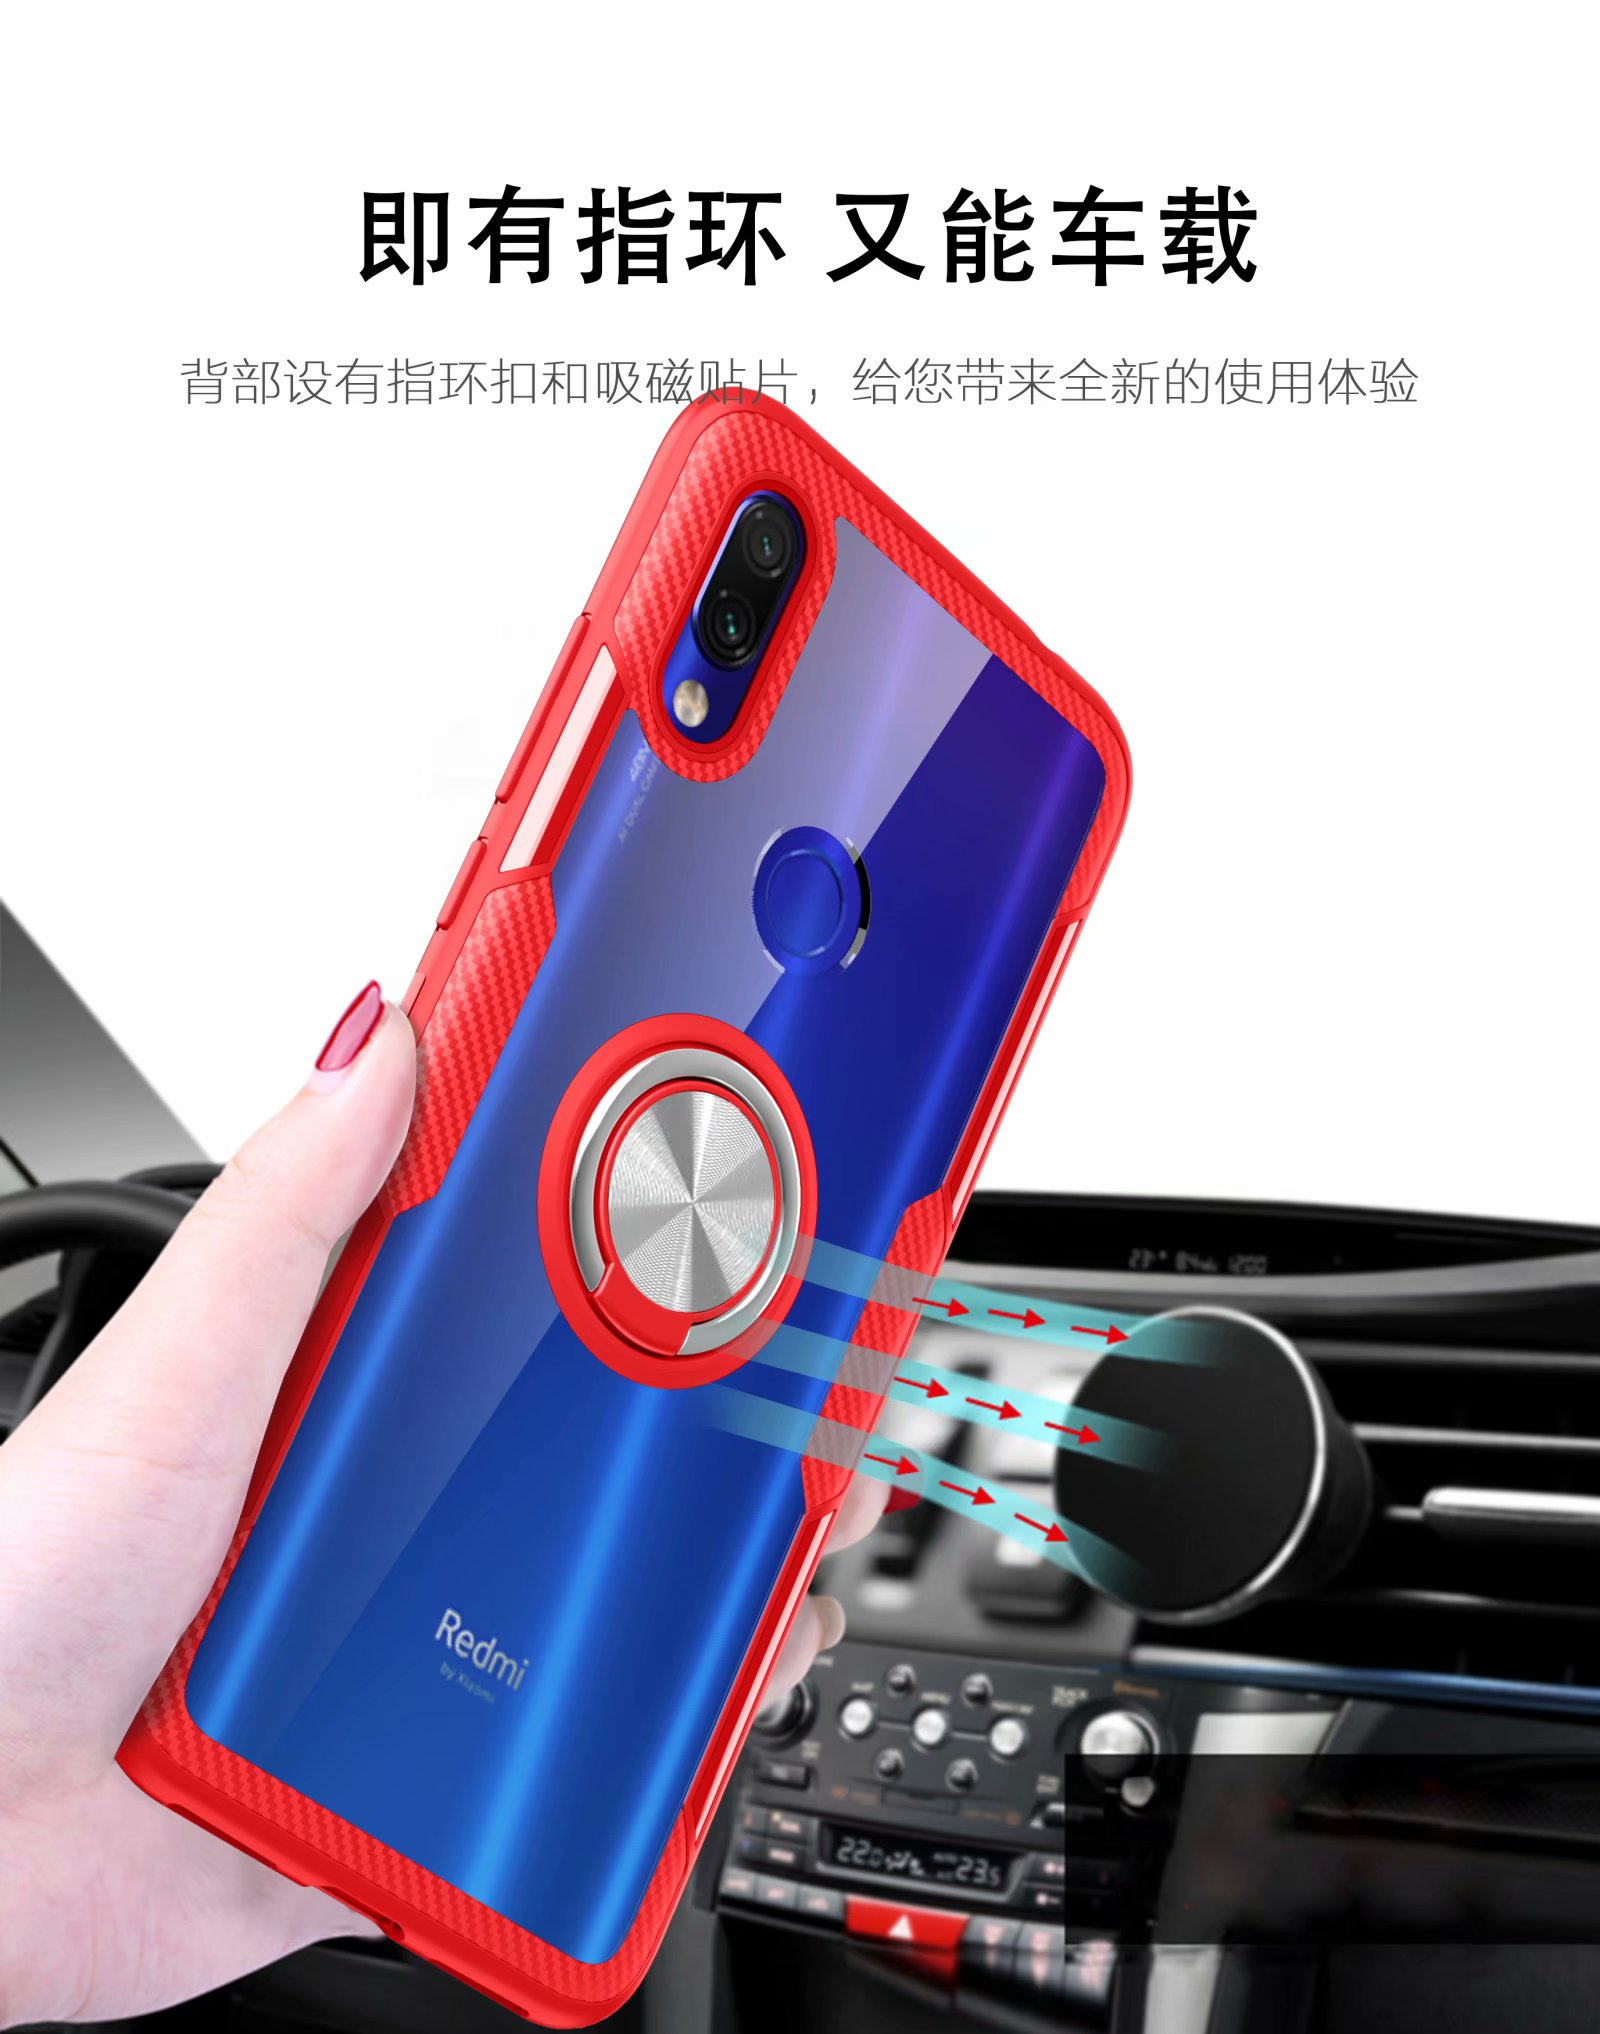 HTB111WzUMHqK1RjSZFEq6AGMXXa9 For Xiaomi Redmi Note 7 Pro Case With Ring Stand Magnet Transparent shockproof Protective Back Cover case for xiaomi redmi 7